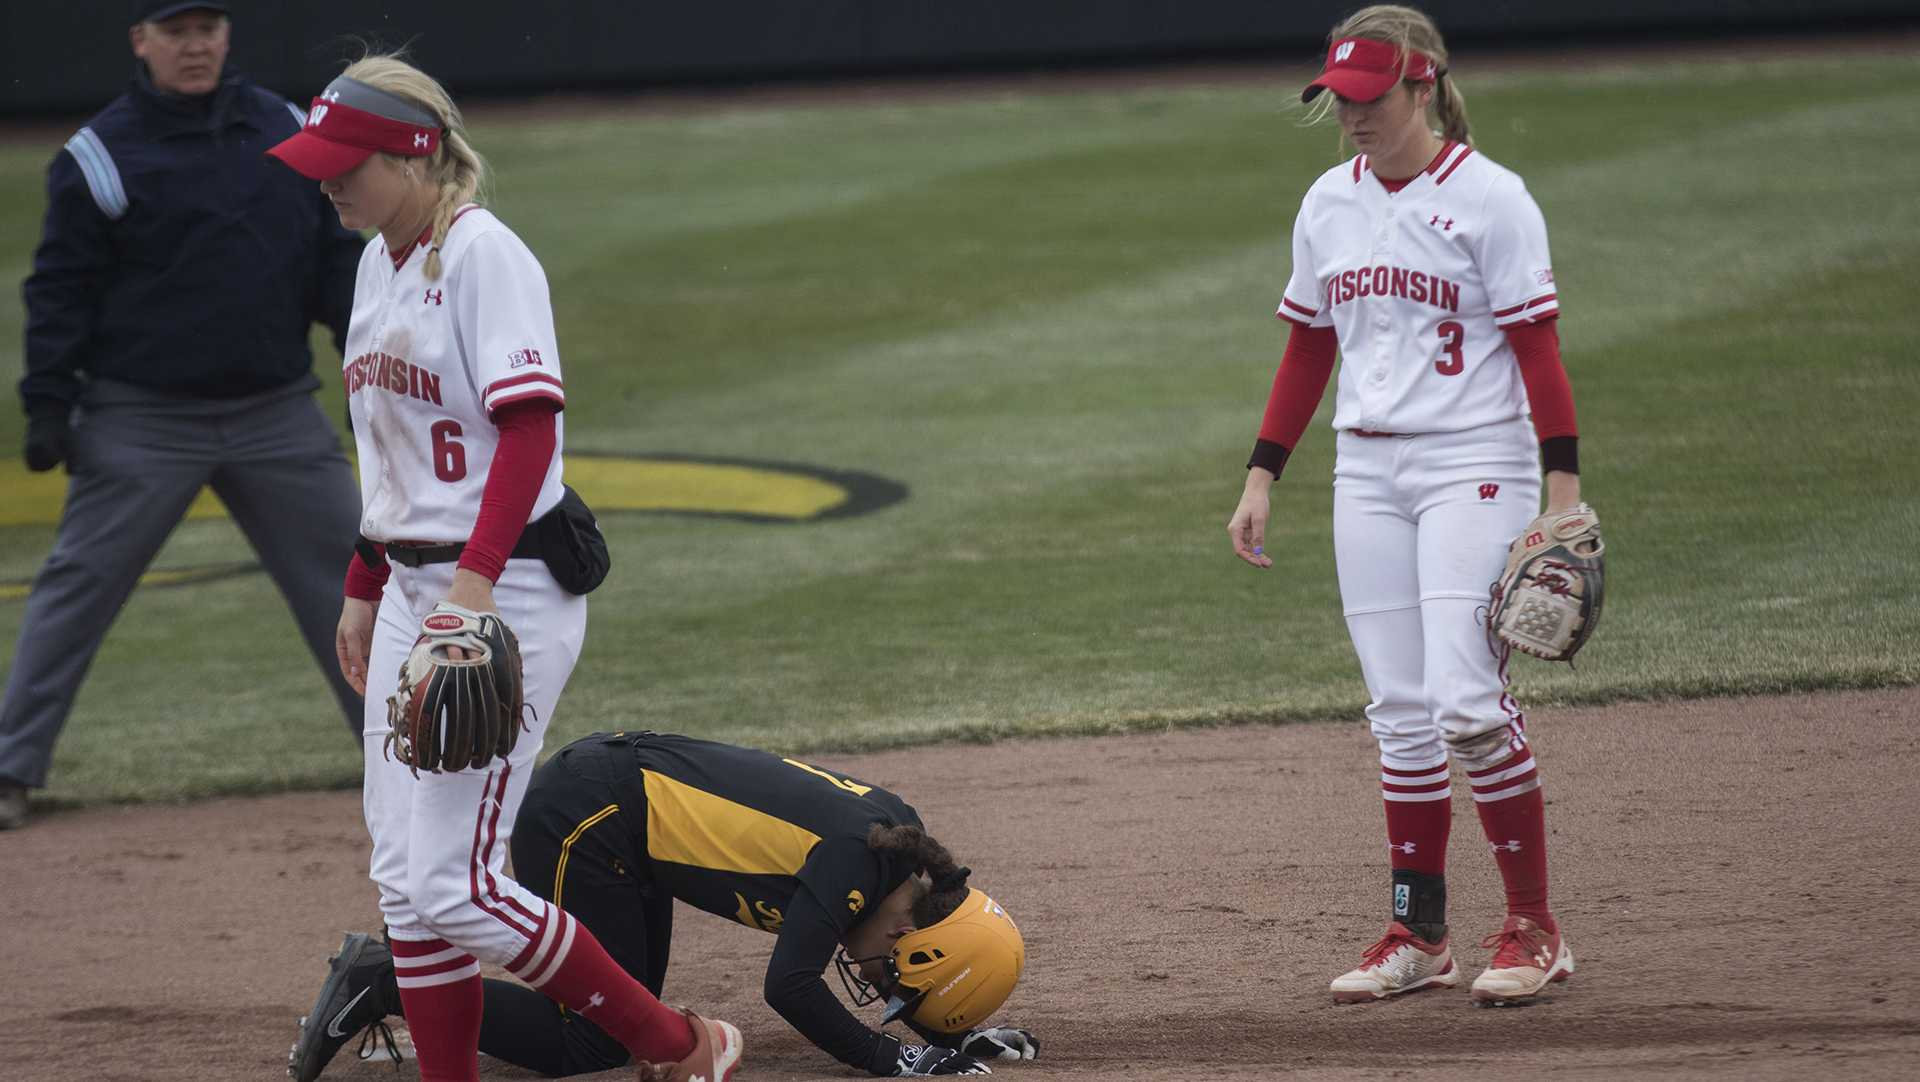 Iowa's Lea Thompson kneels next to the base during the Iowa/Wisconsin softball game at Bob Pearl Field  on Sunday, April 8, 2018. The Hawkeyes defeated the Badgers in the third game of the series, 5-3. (Lily Smith/The Daily Iowan)